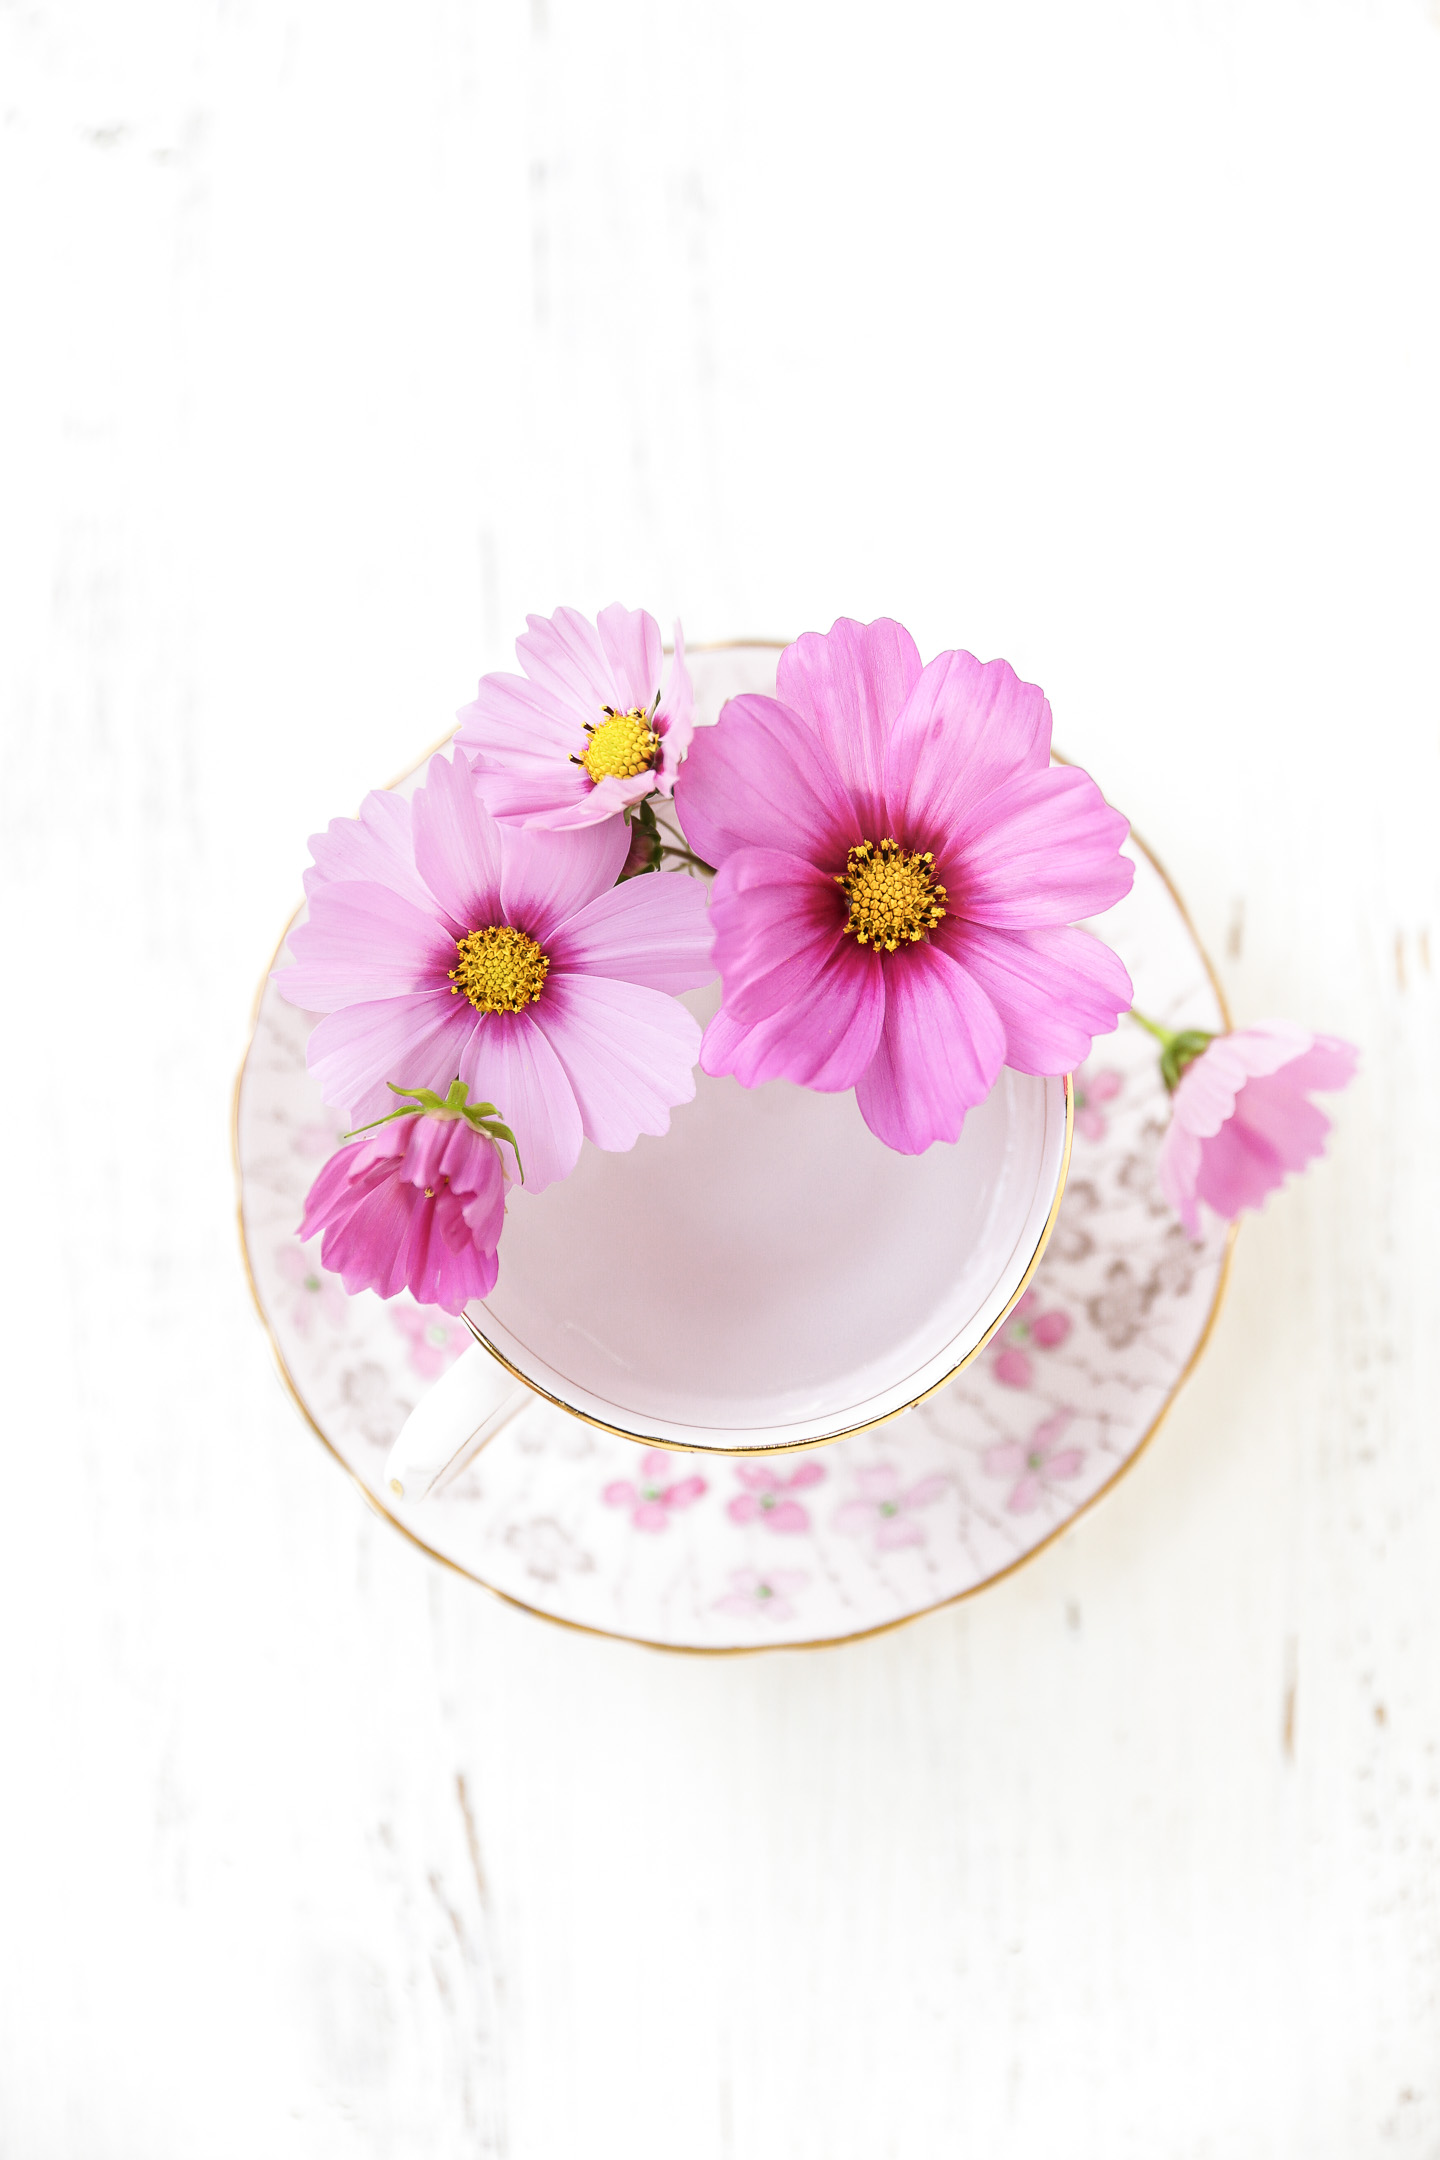 An overhead photo of pink cosmos in a vintage teacup.